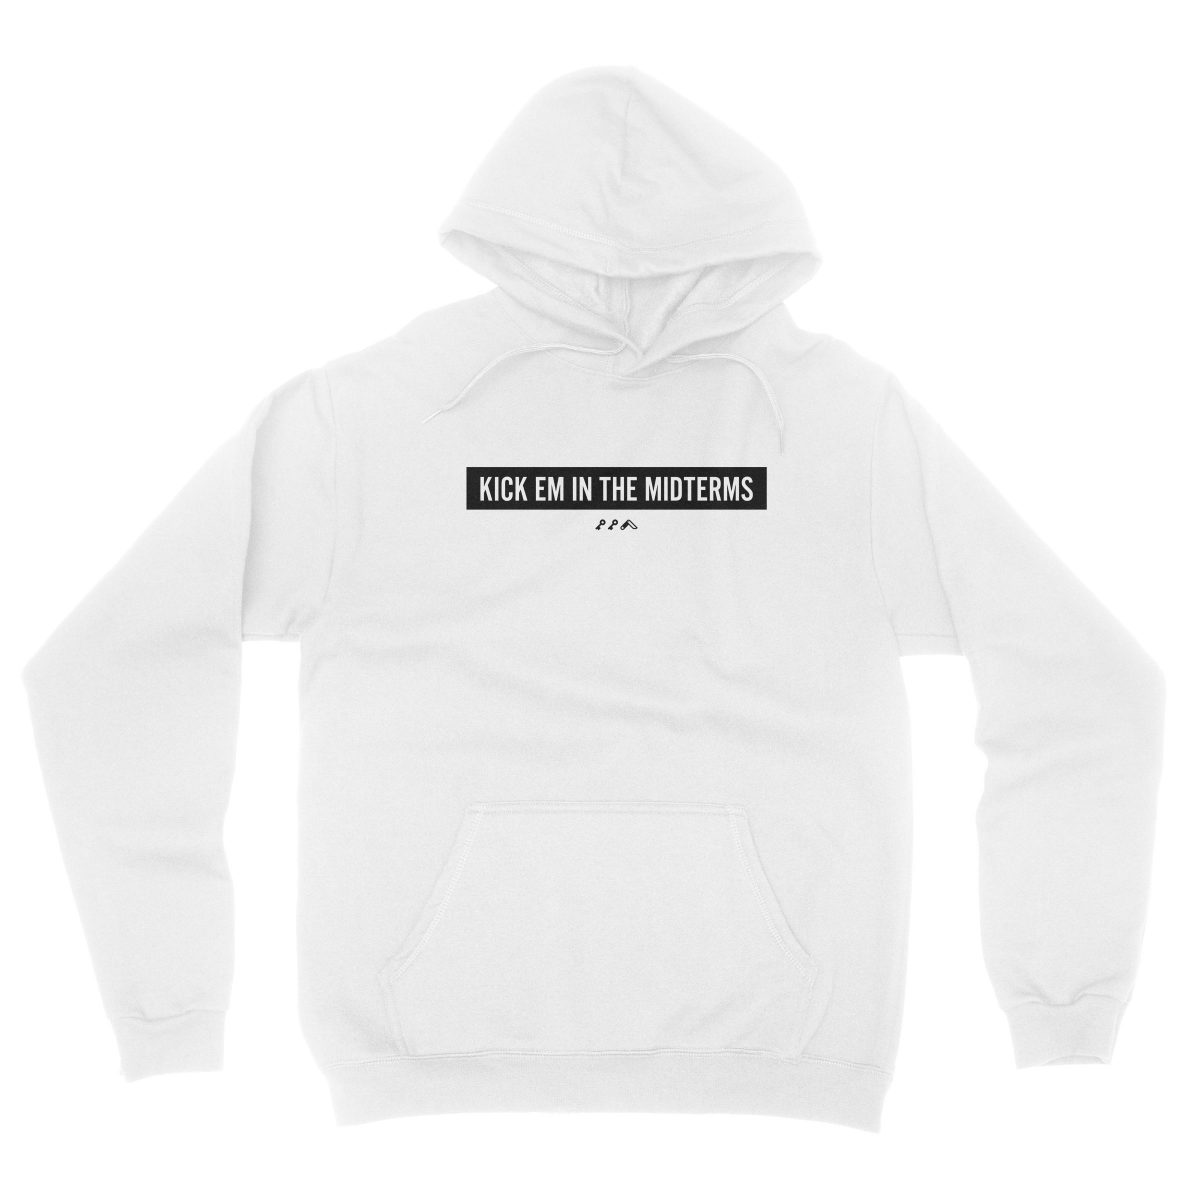 """KICK EM IN THE MIDTERMS"" funny political hoodie in white"